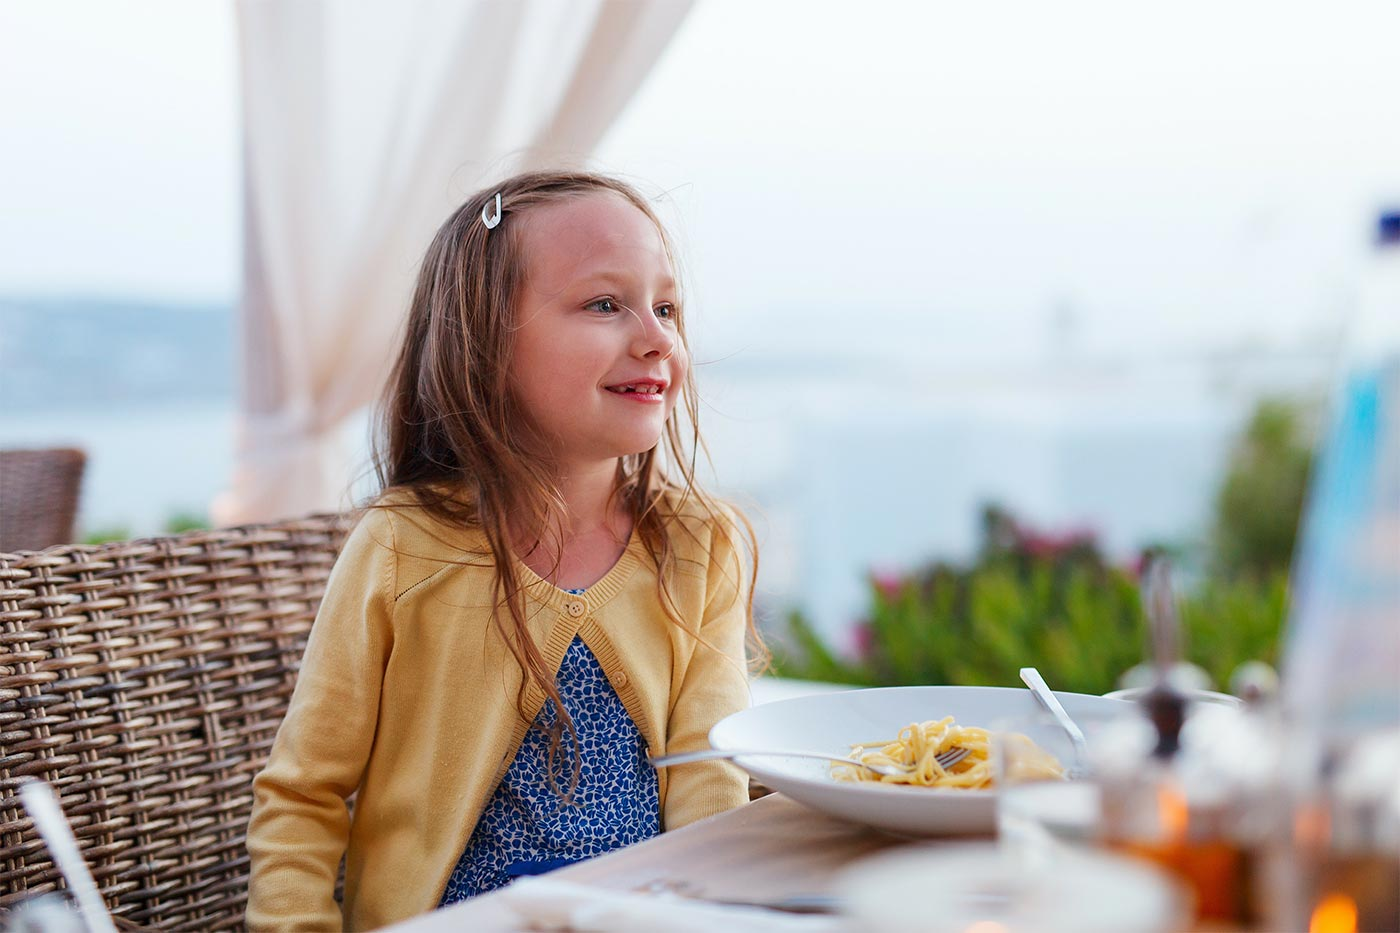 How to improve children's table manners